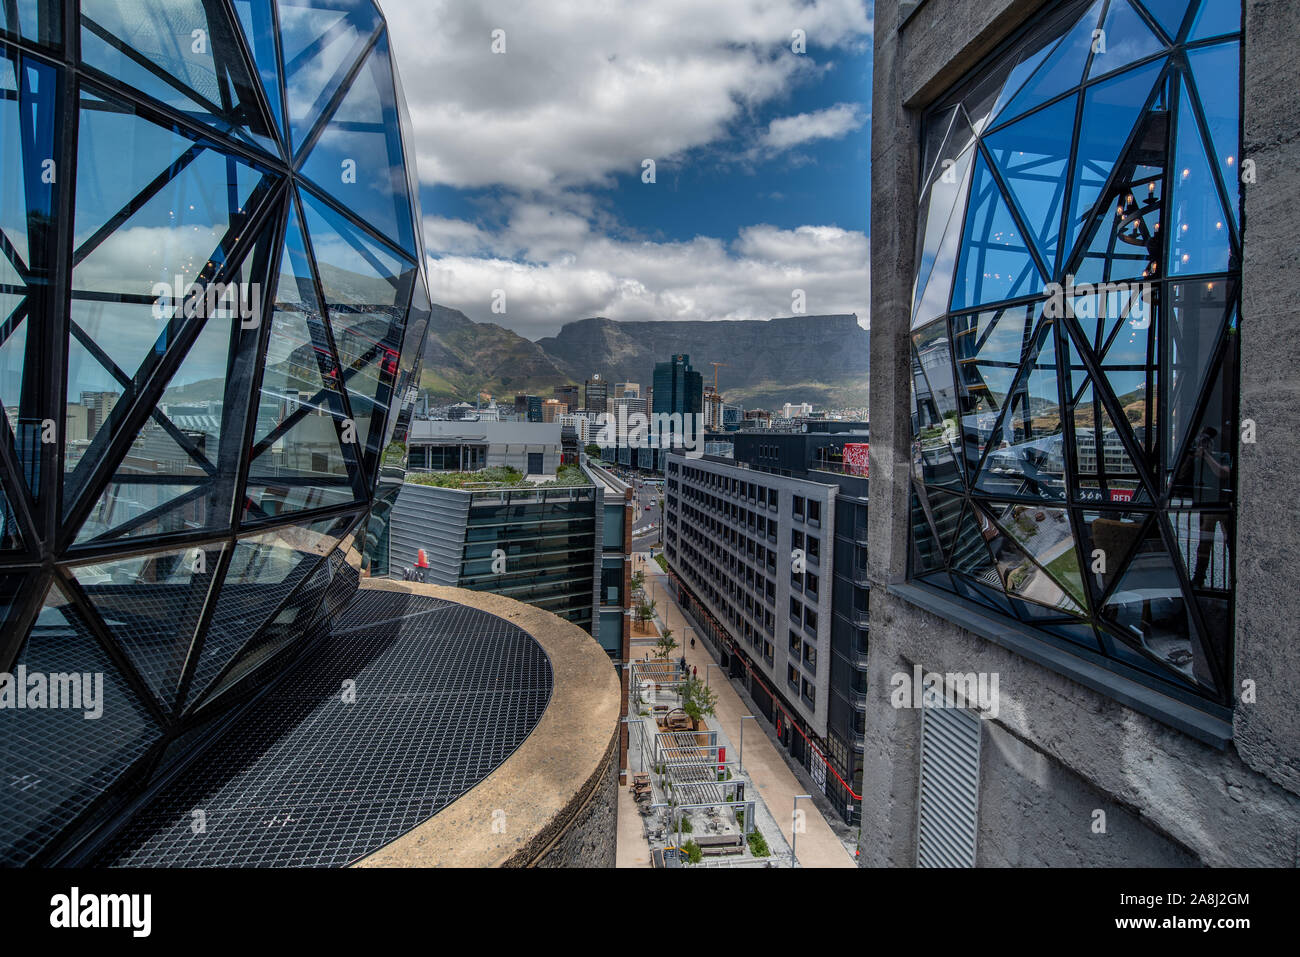 View of the street with Table Mountain in the background from the top of Zeitz Museum in Cape Town, South Africa Stock Photo